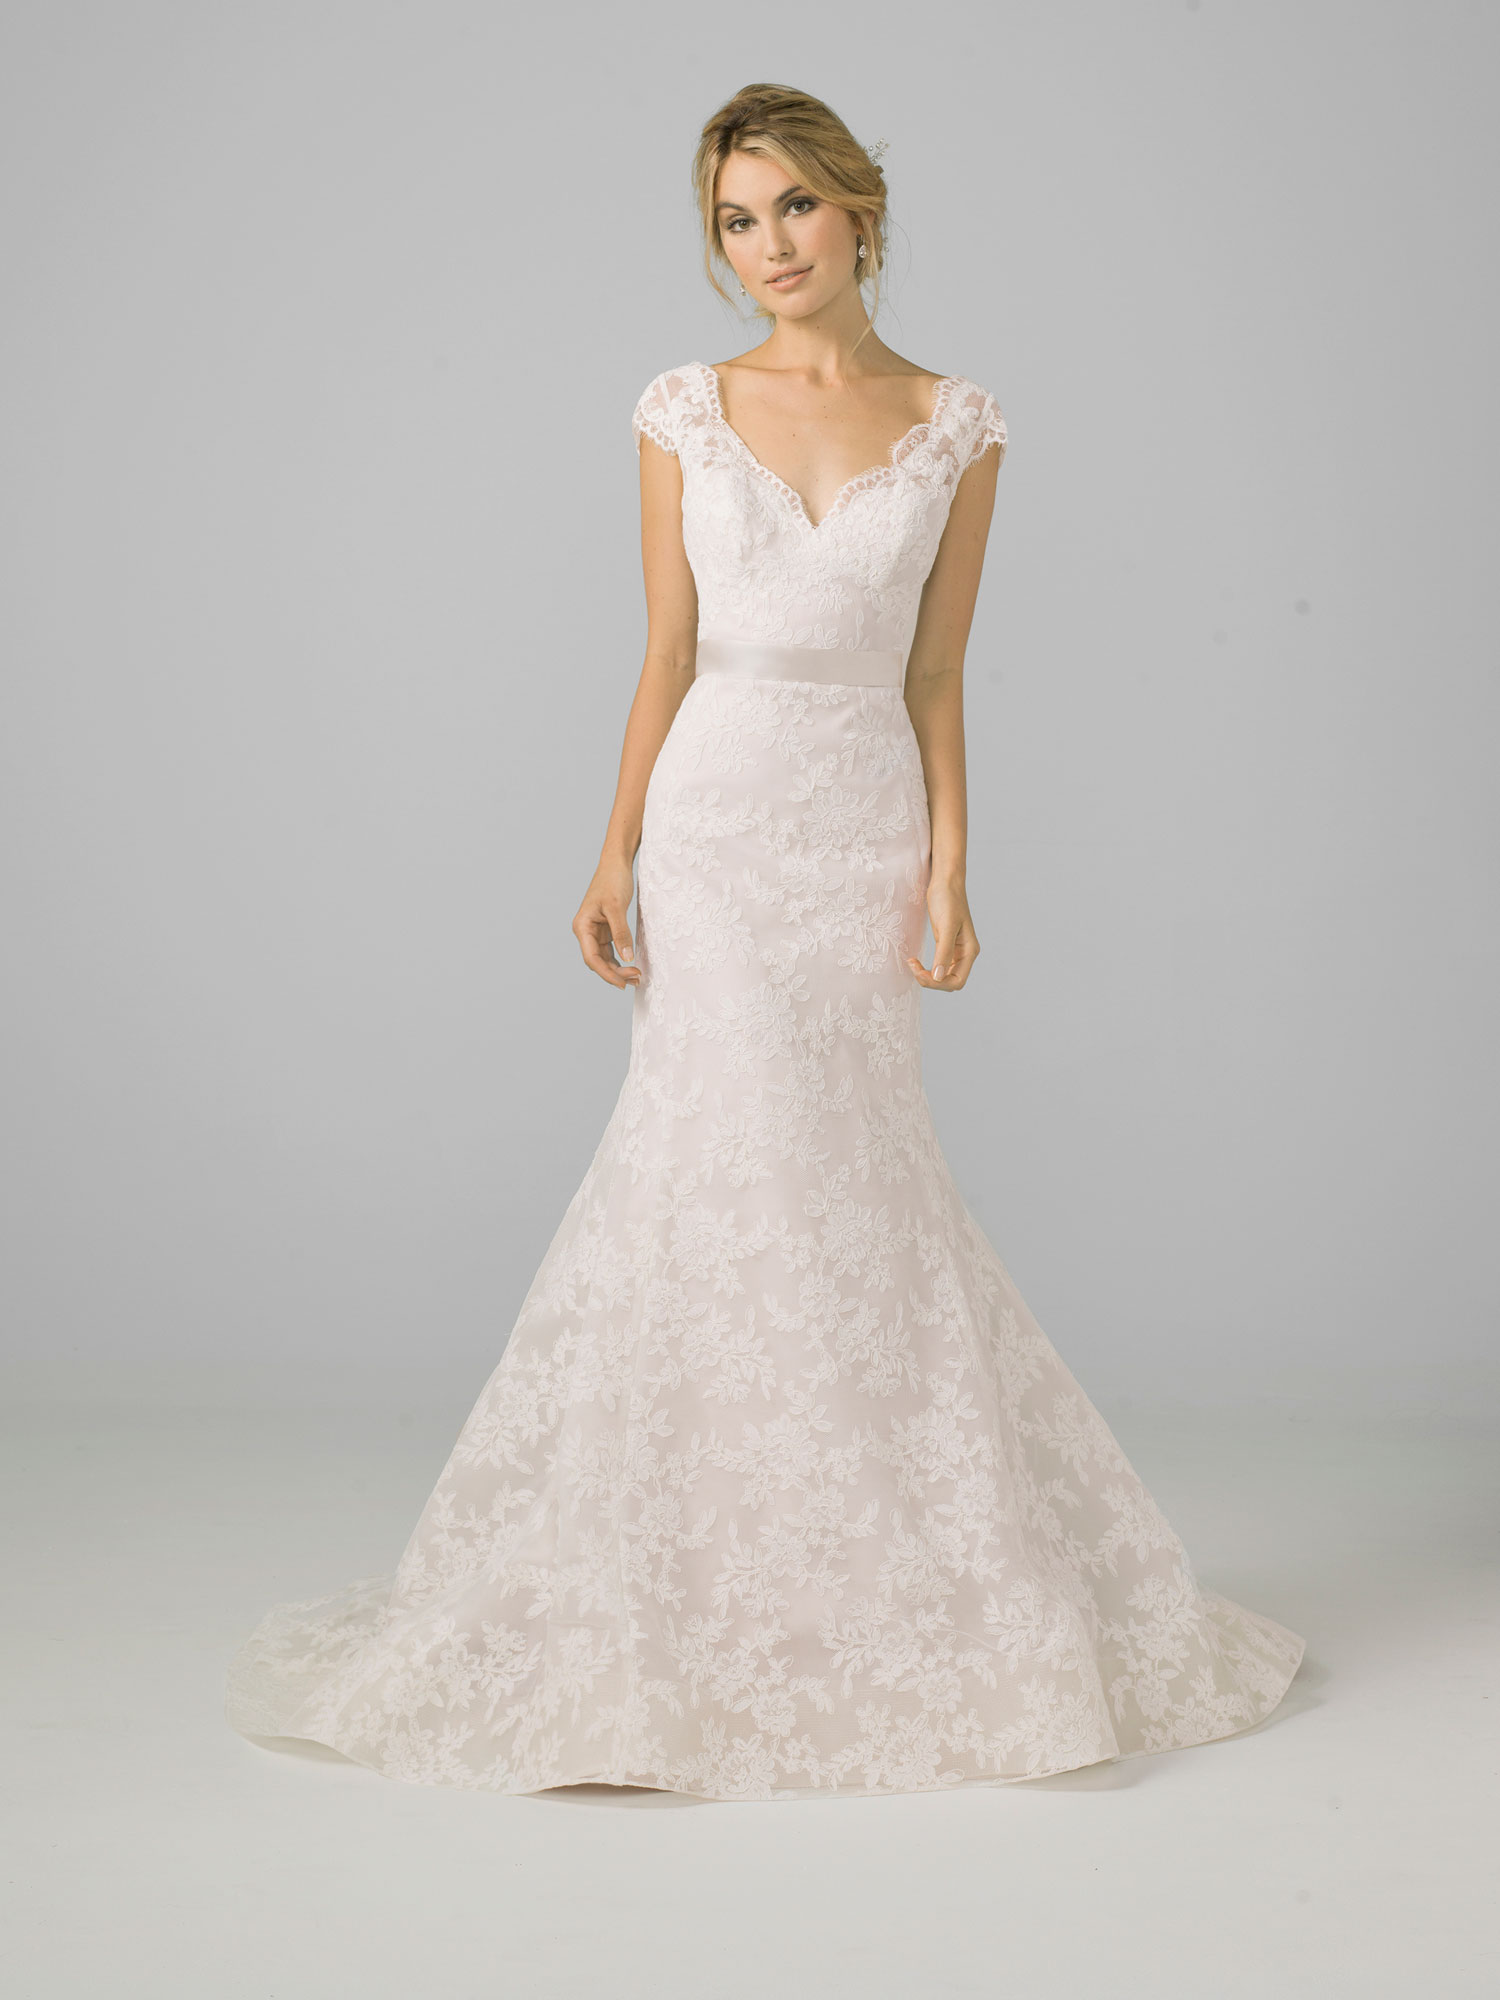 Liancarlo Azul 2018 bridal collection lace v-neck mermaid gown with cap  sleeves